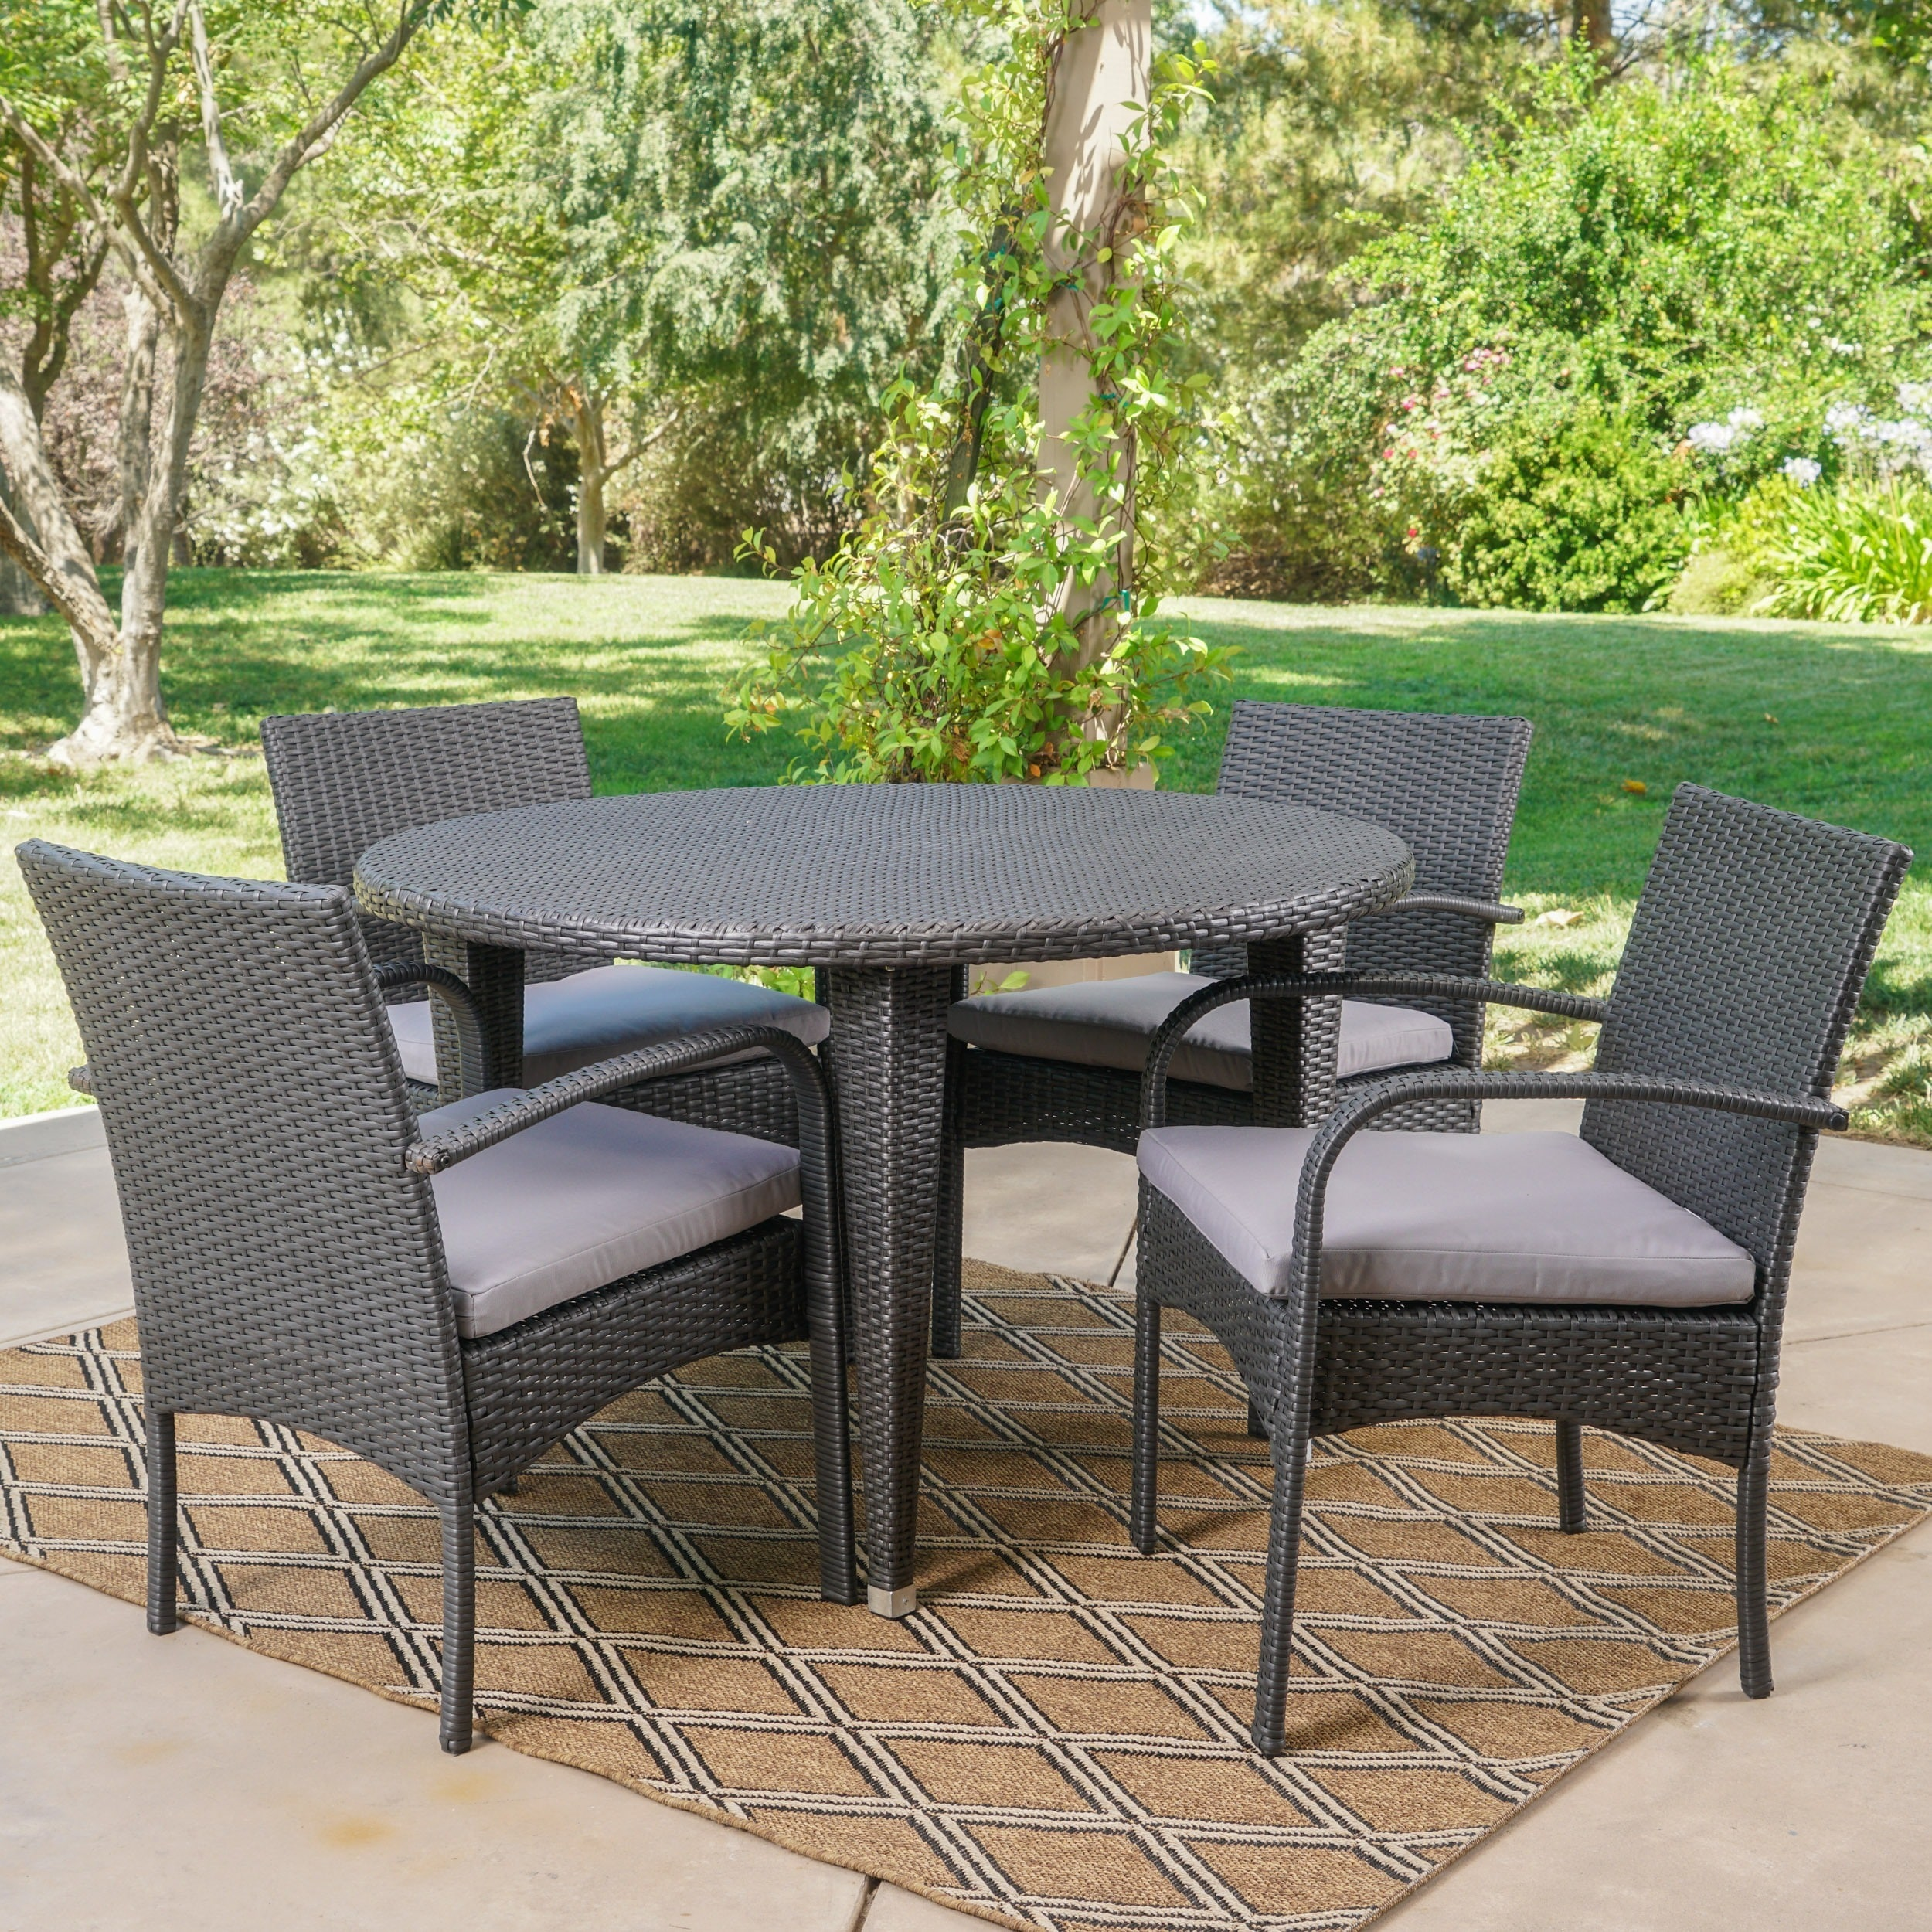 Marin Outdoor 5 Piece Round Dining Set With Cushions By Christopher Knight Home On Free Shipping Today 16932230